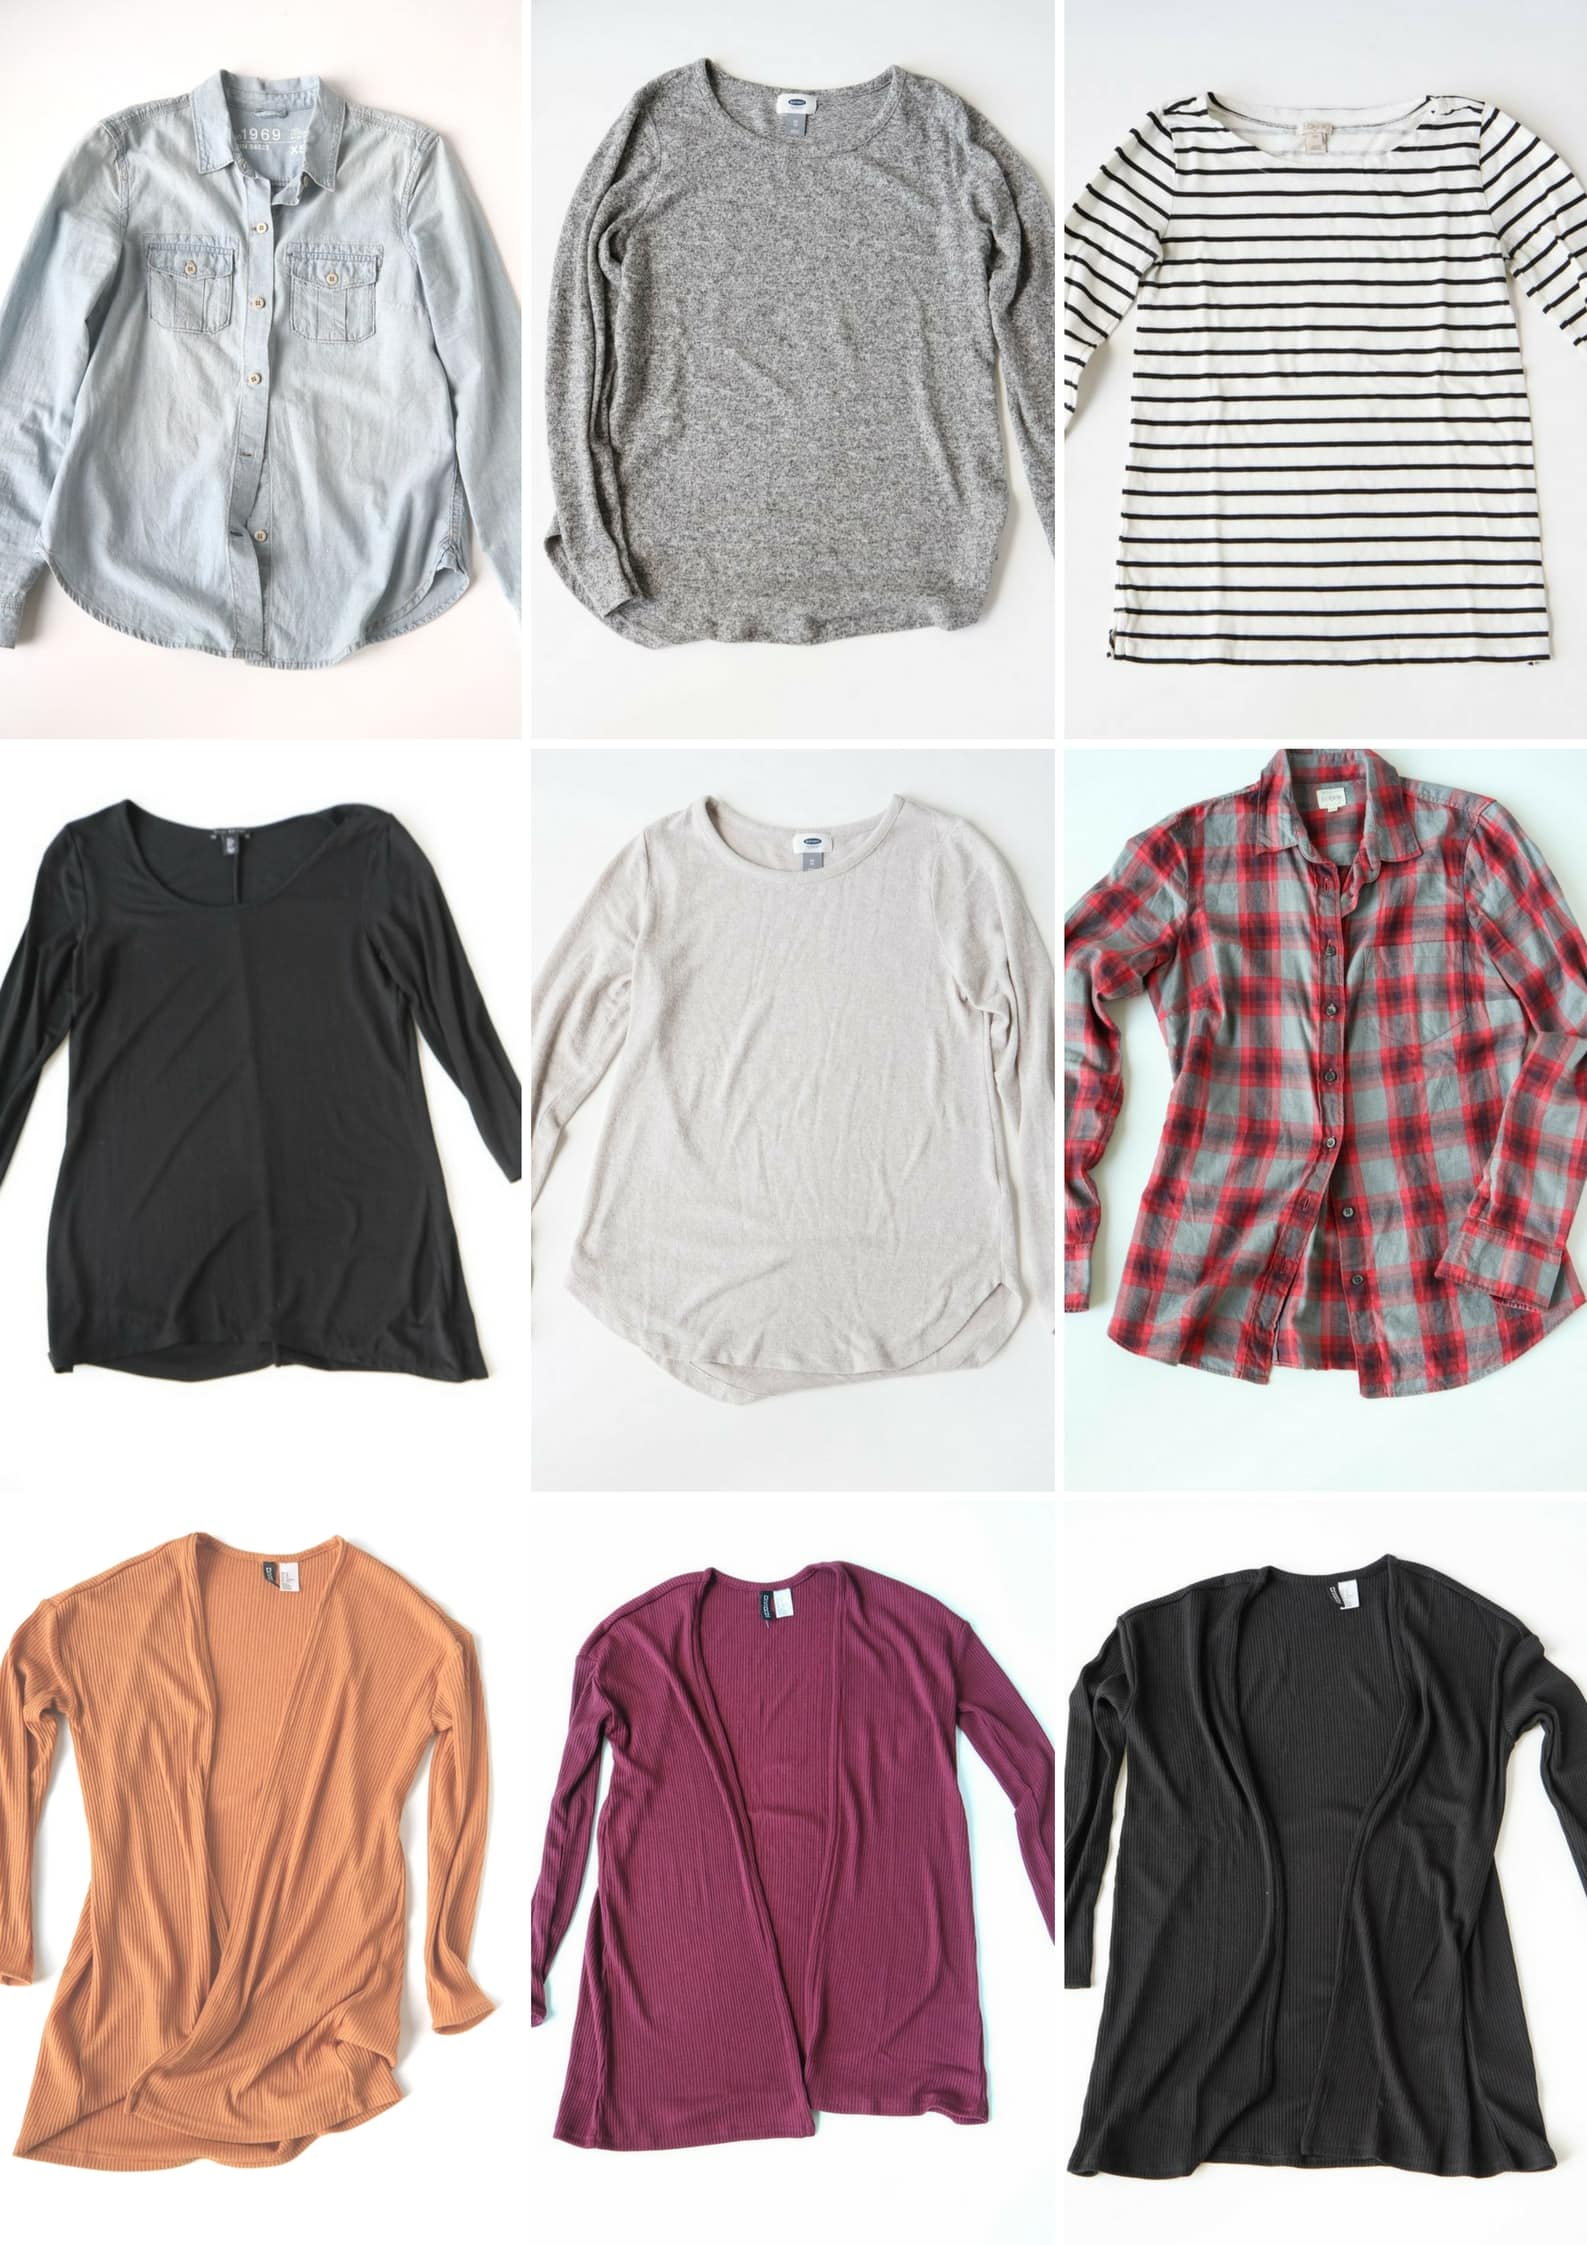 Fall/Winter 2106 Fashion Capsule Wardrobe